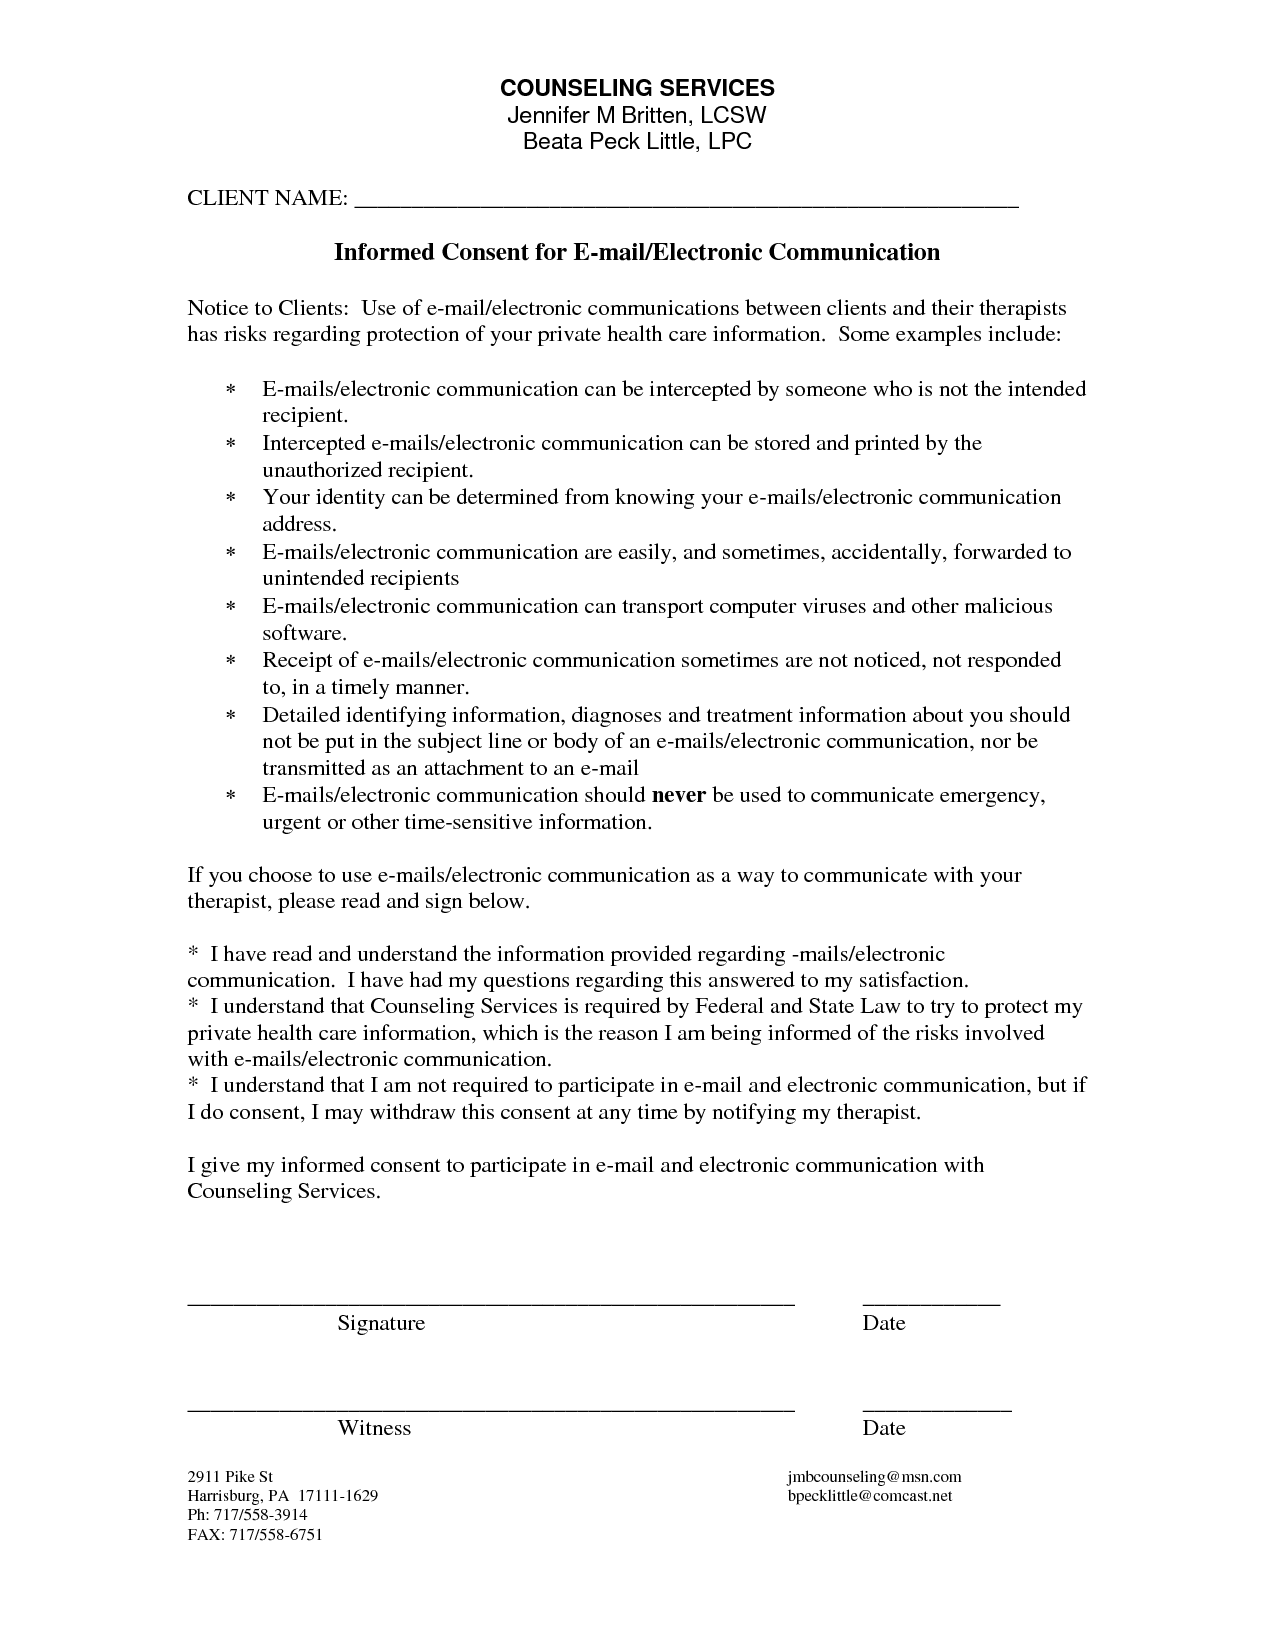 Counseling Informed Consent Form Template | Counseling Adaptations ...